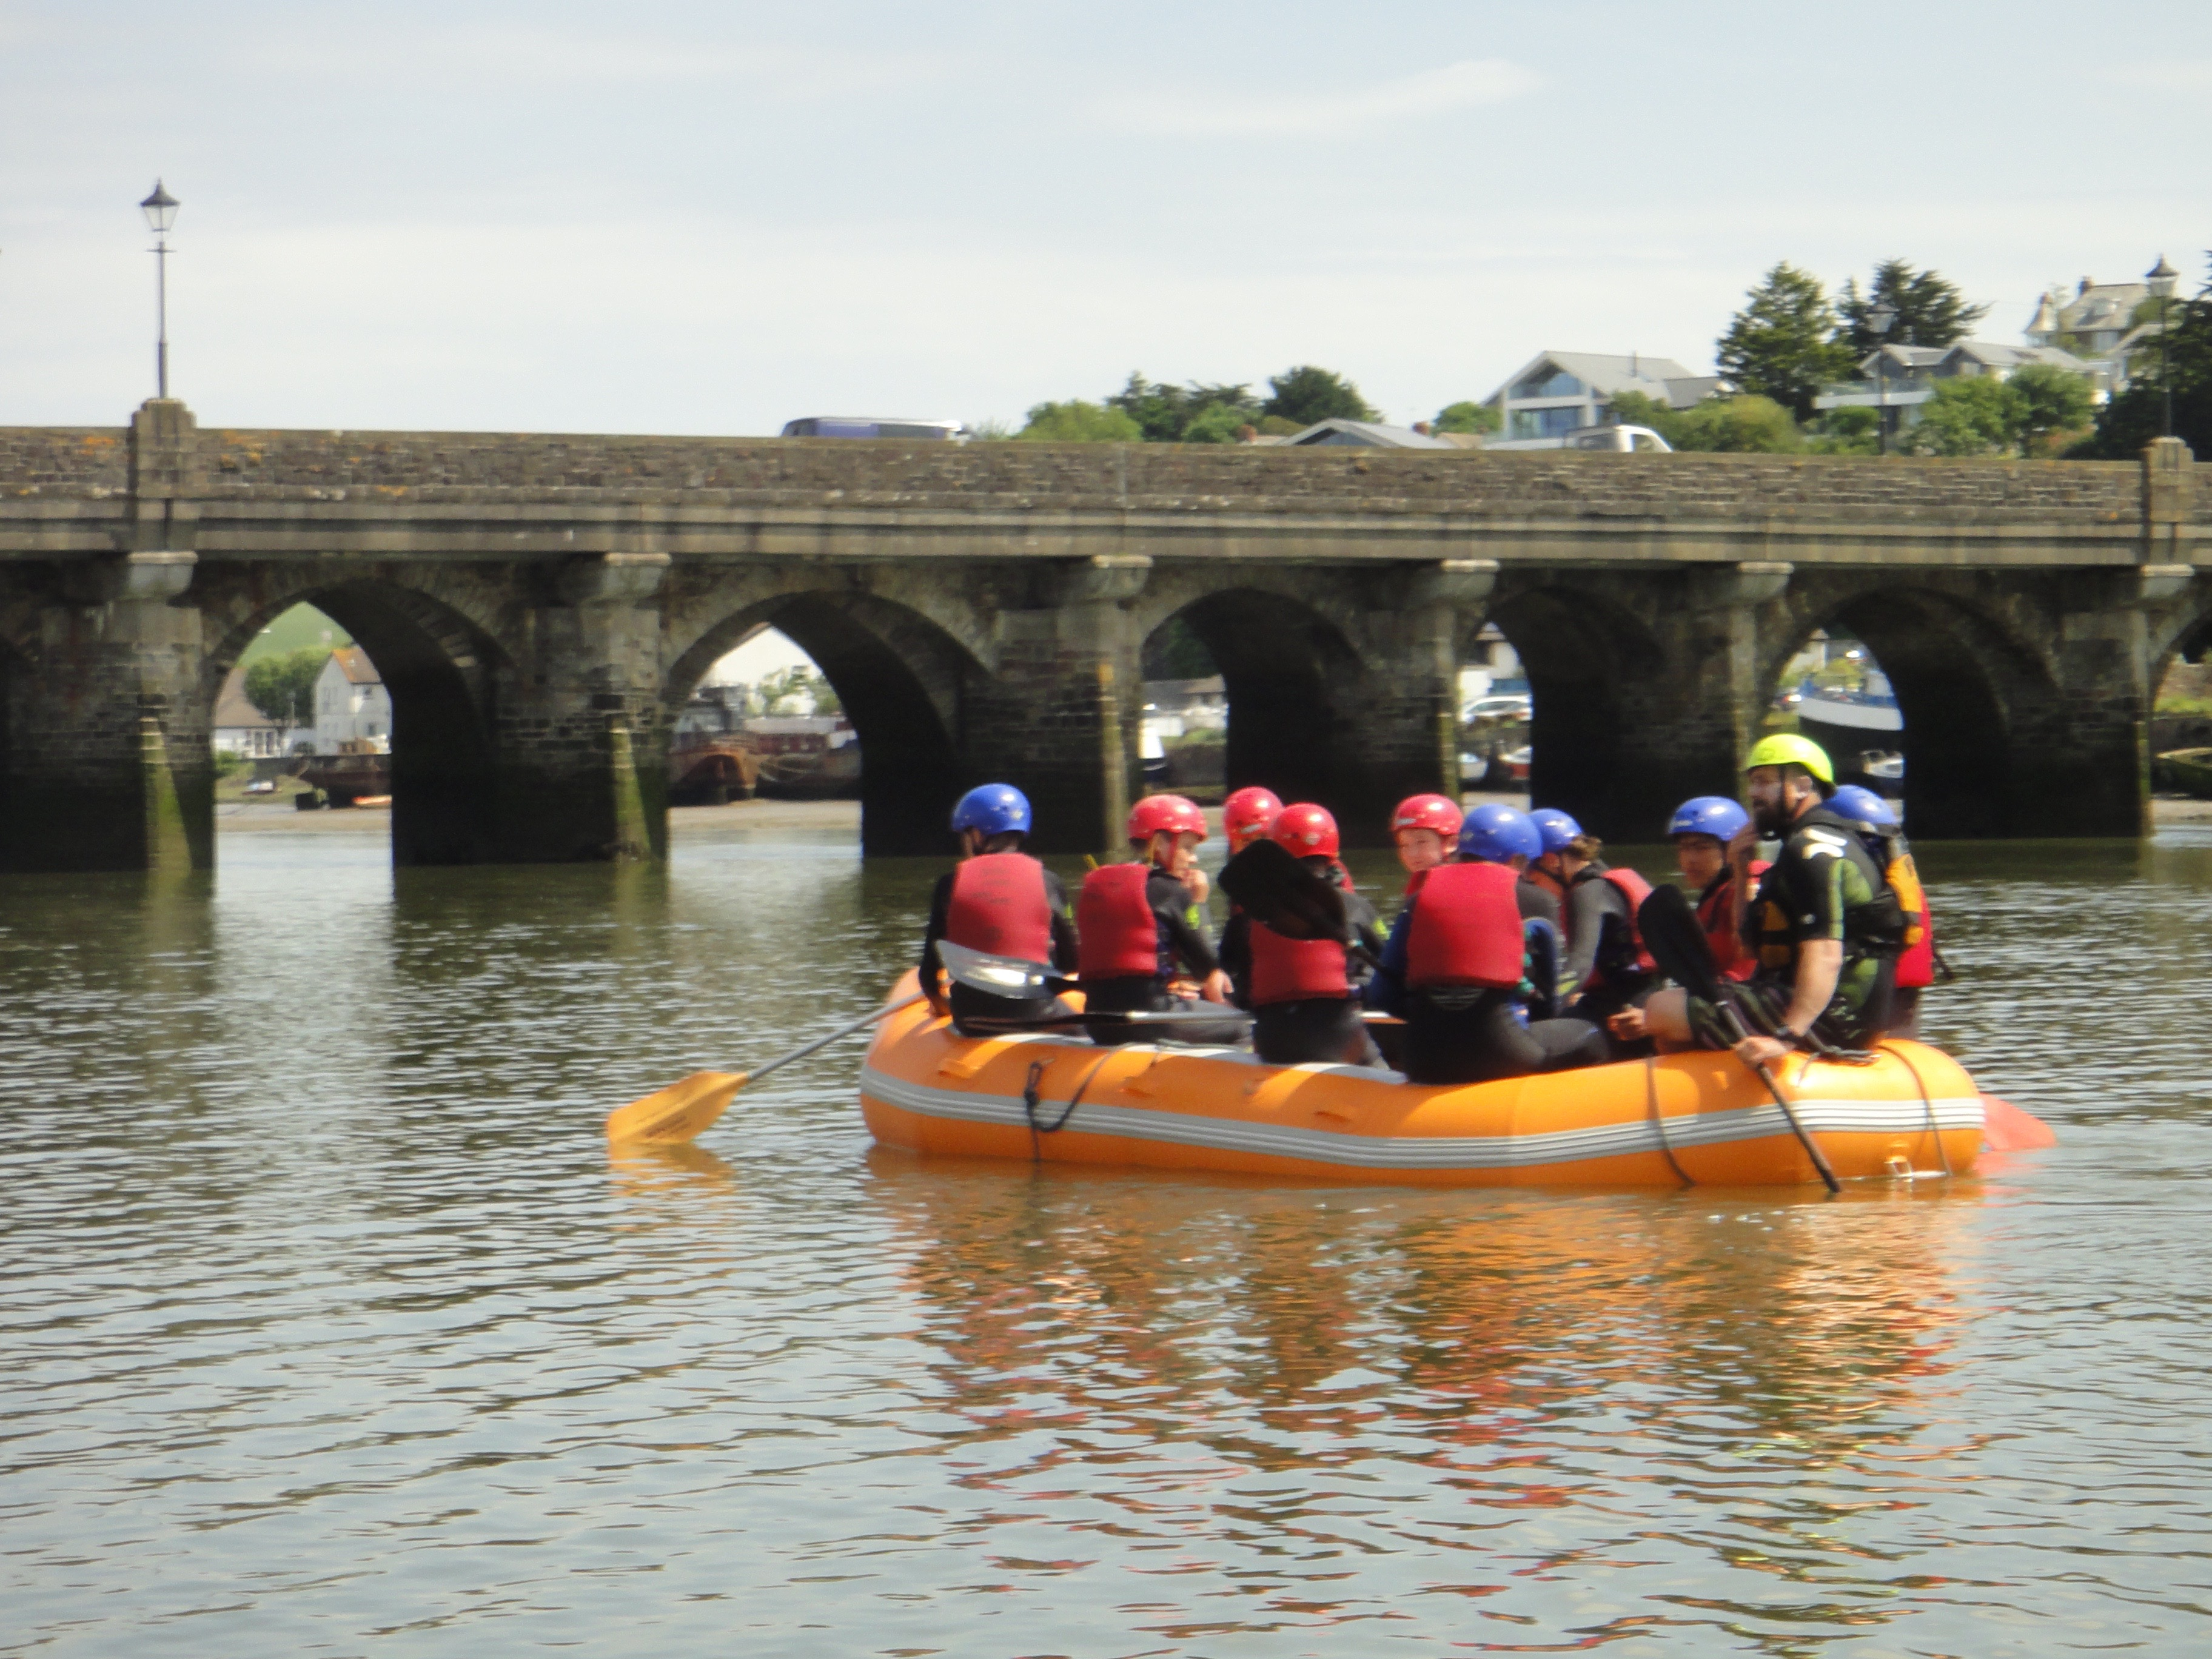 Rafting on the River Torridge